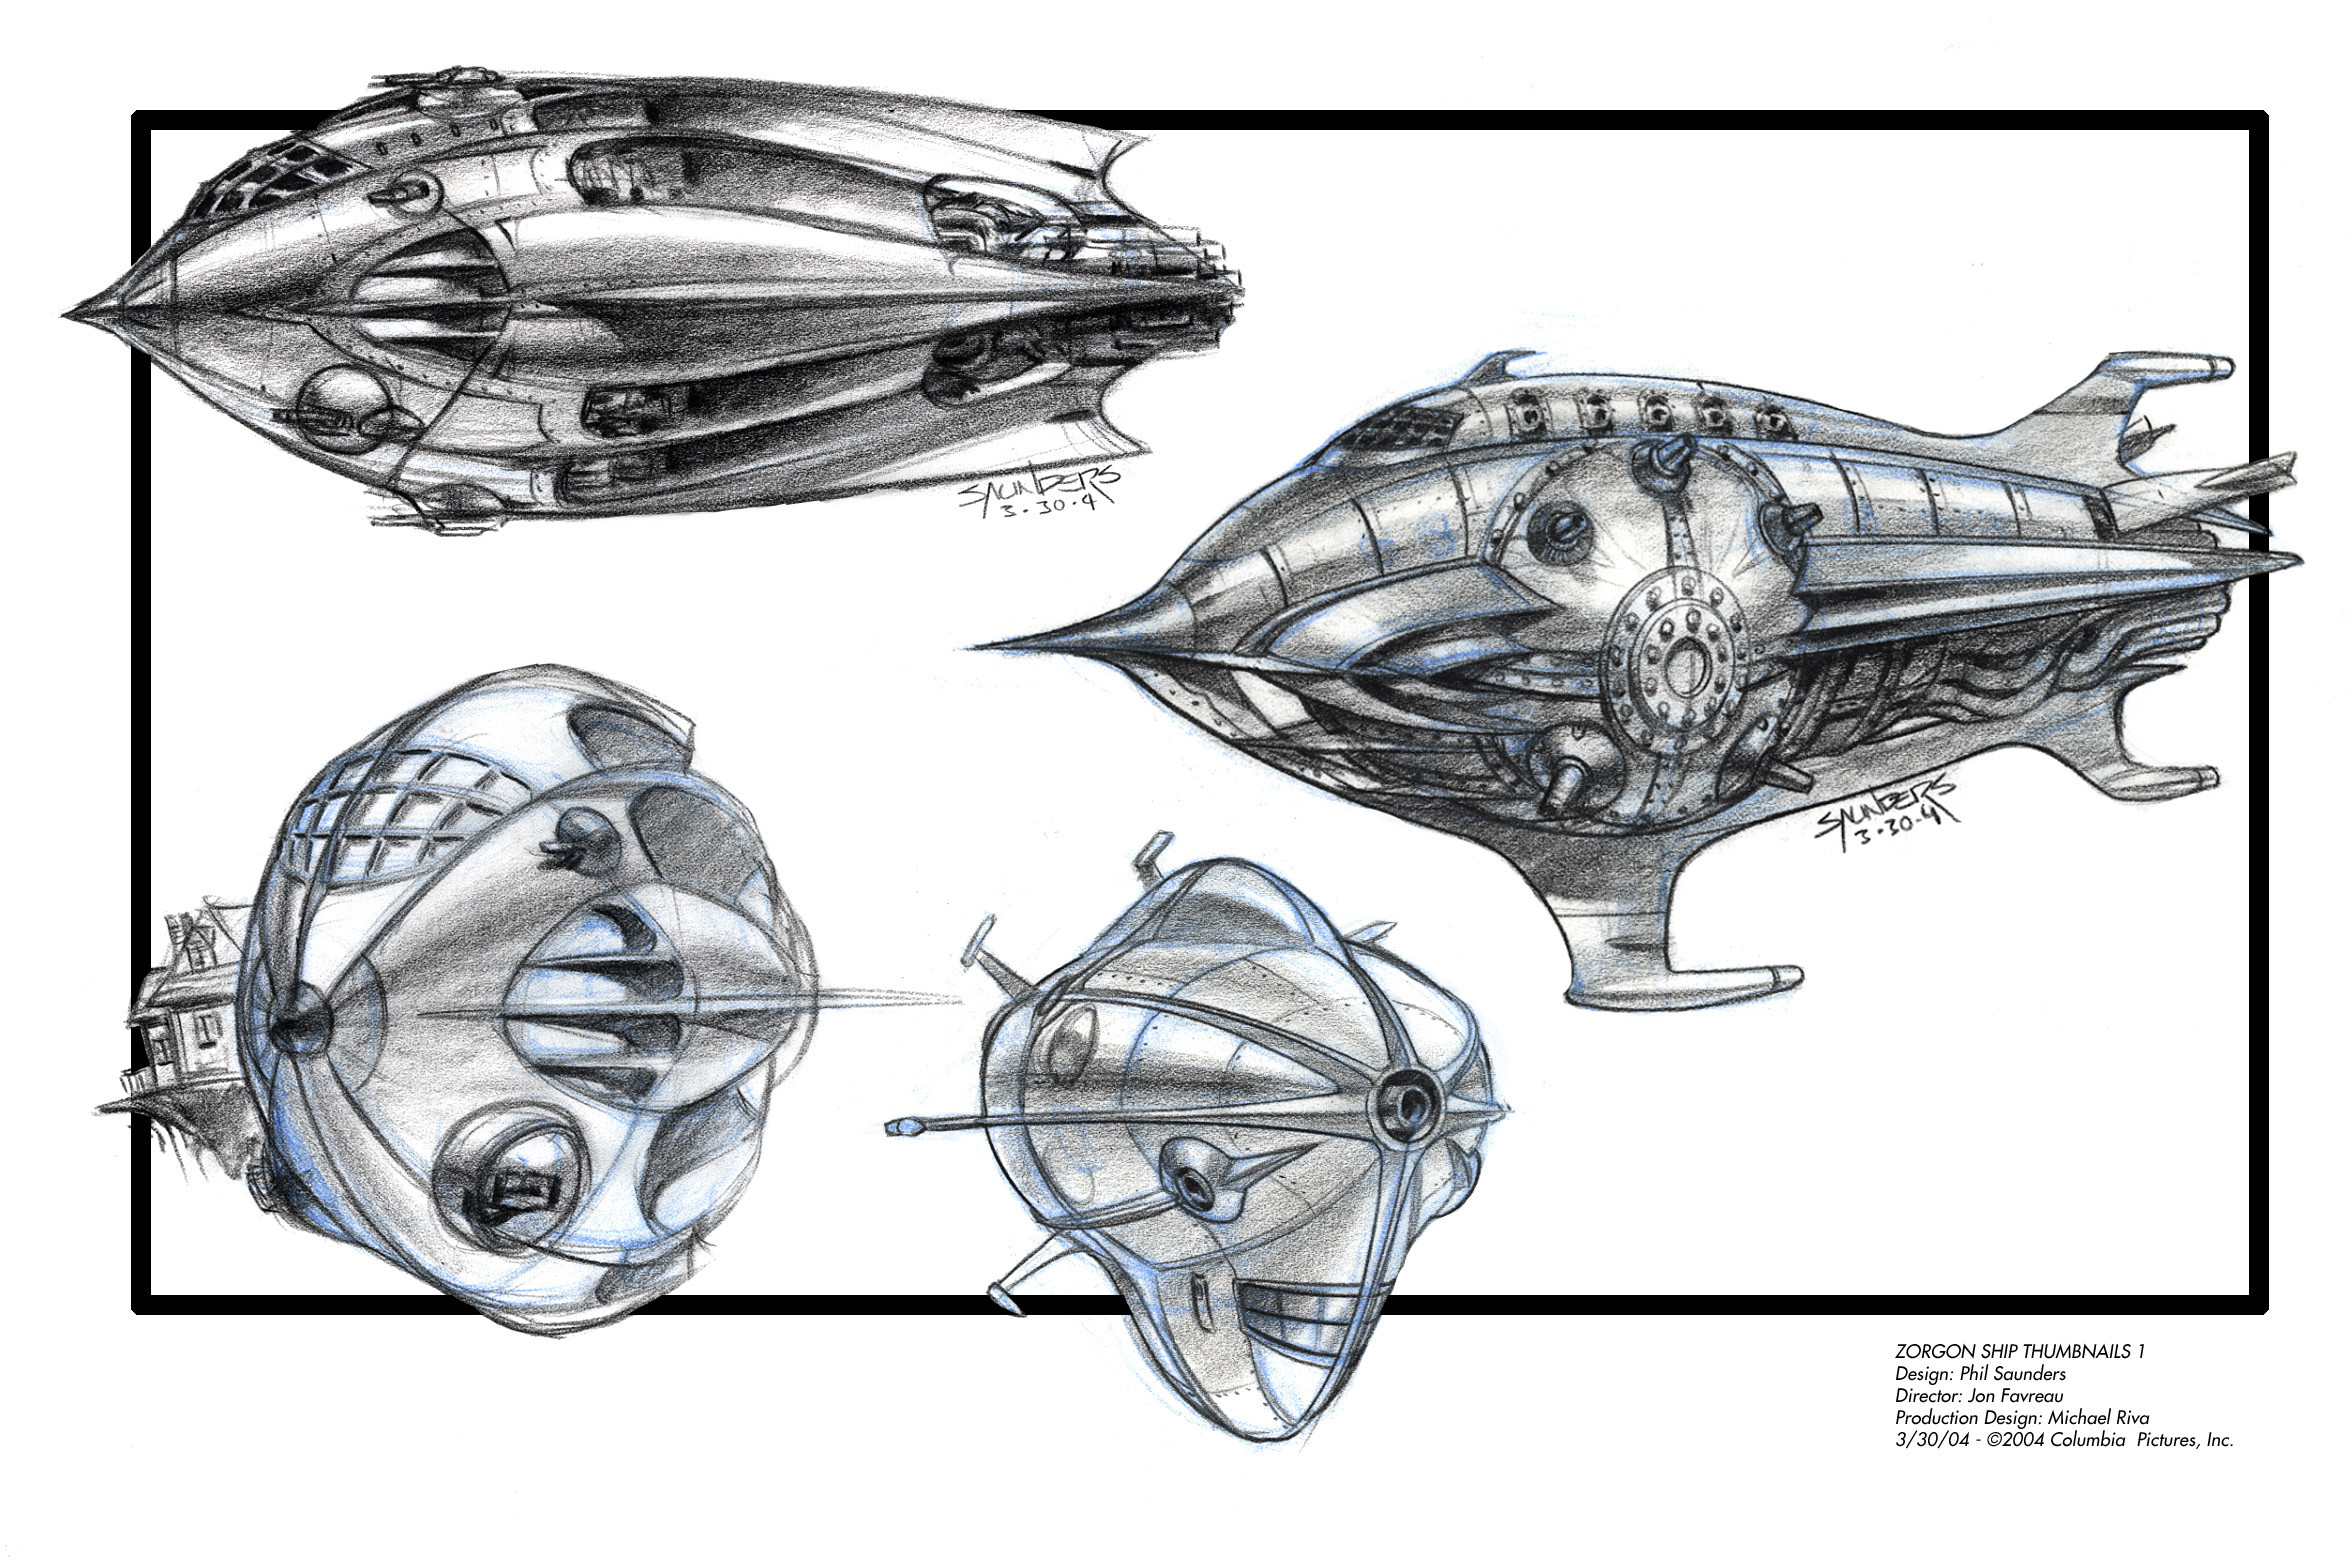 First page of Prismacolor sketches to develop the Zorgon Ship. Channeling a lot of Buck Rogers here!